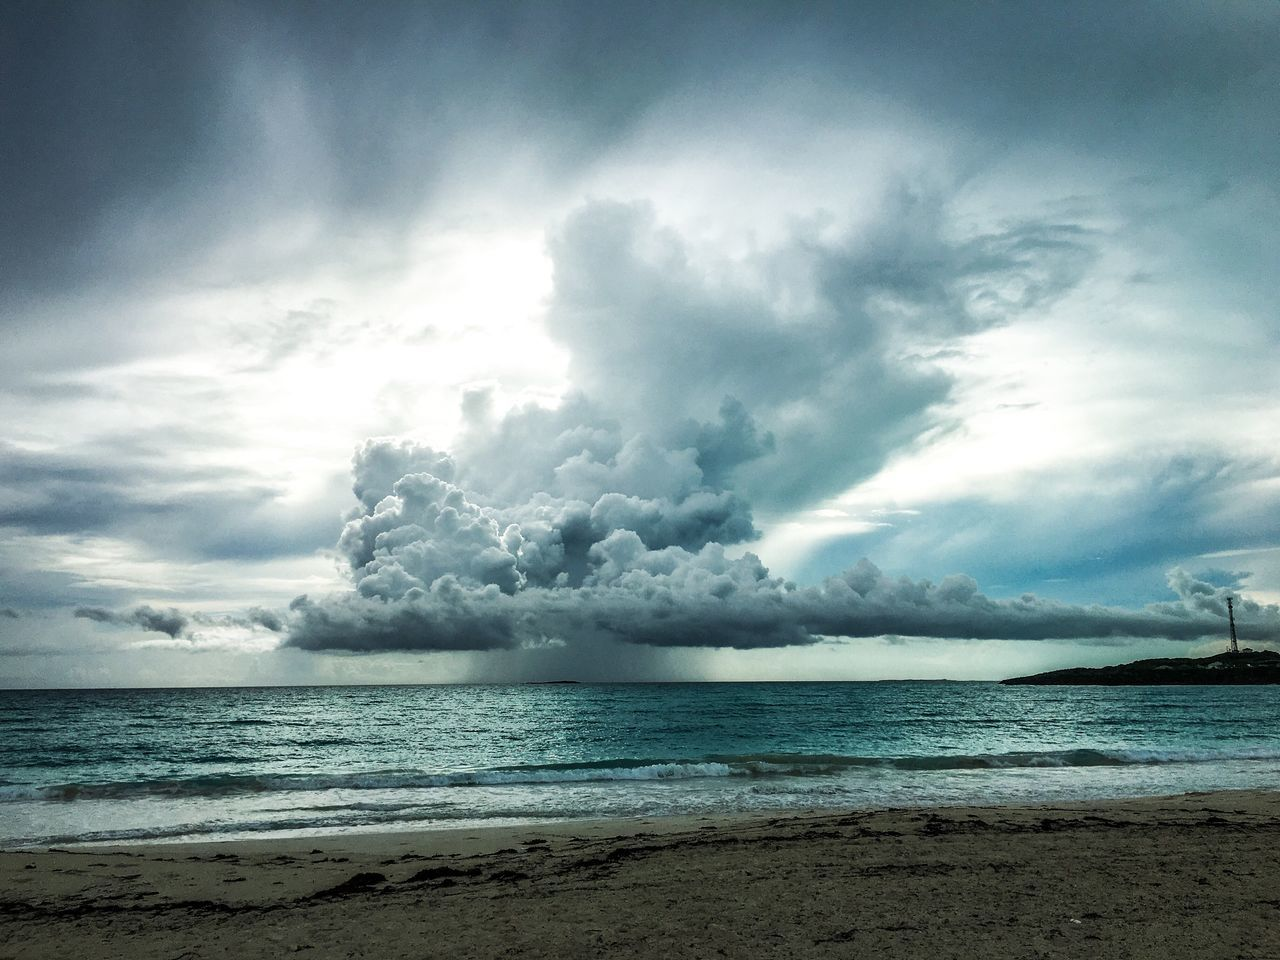 Summer storm off the coast of Great Exuma, Bahamas.